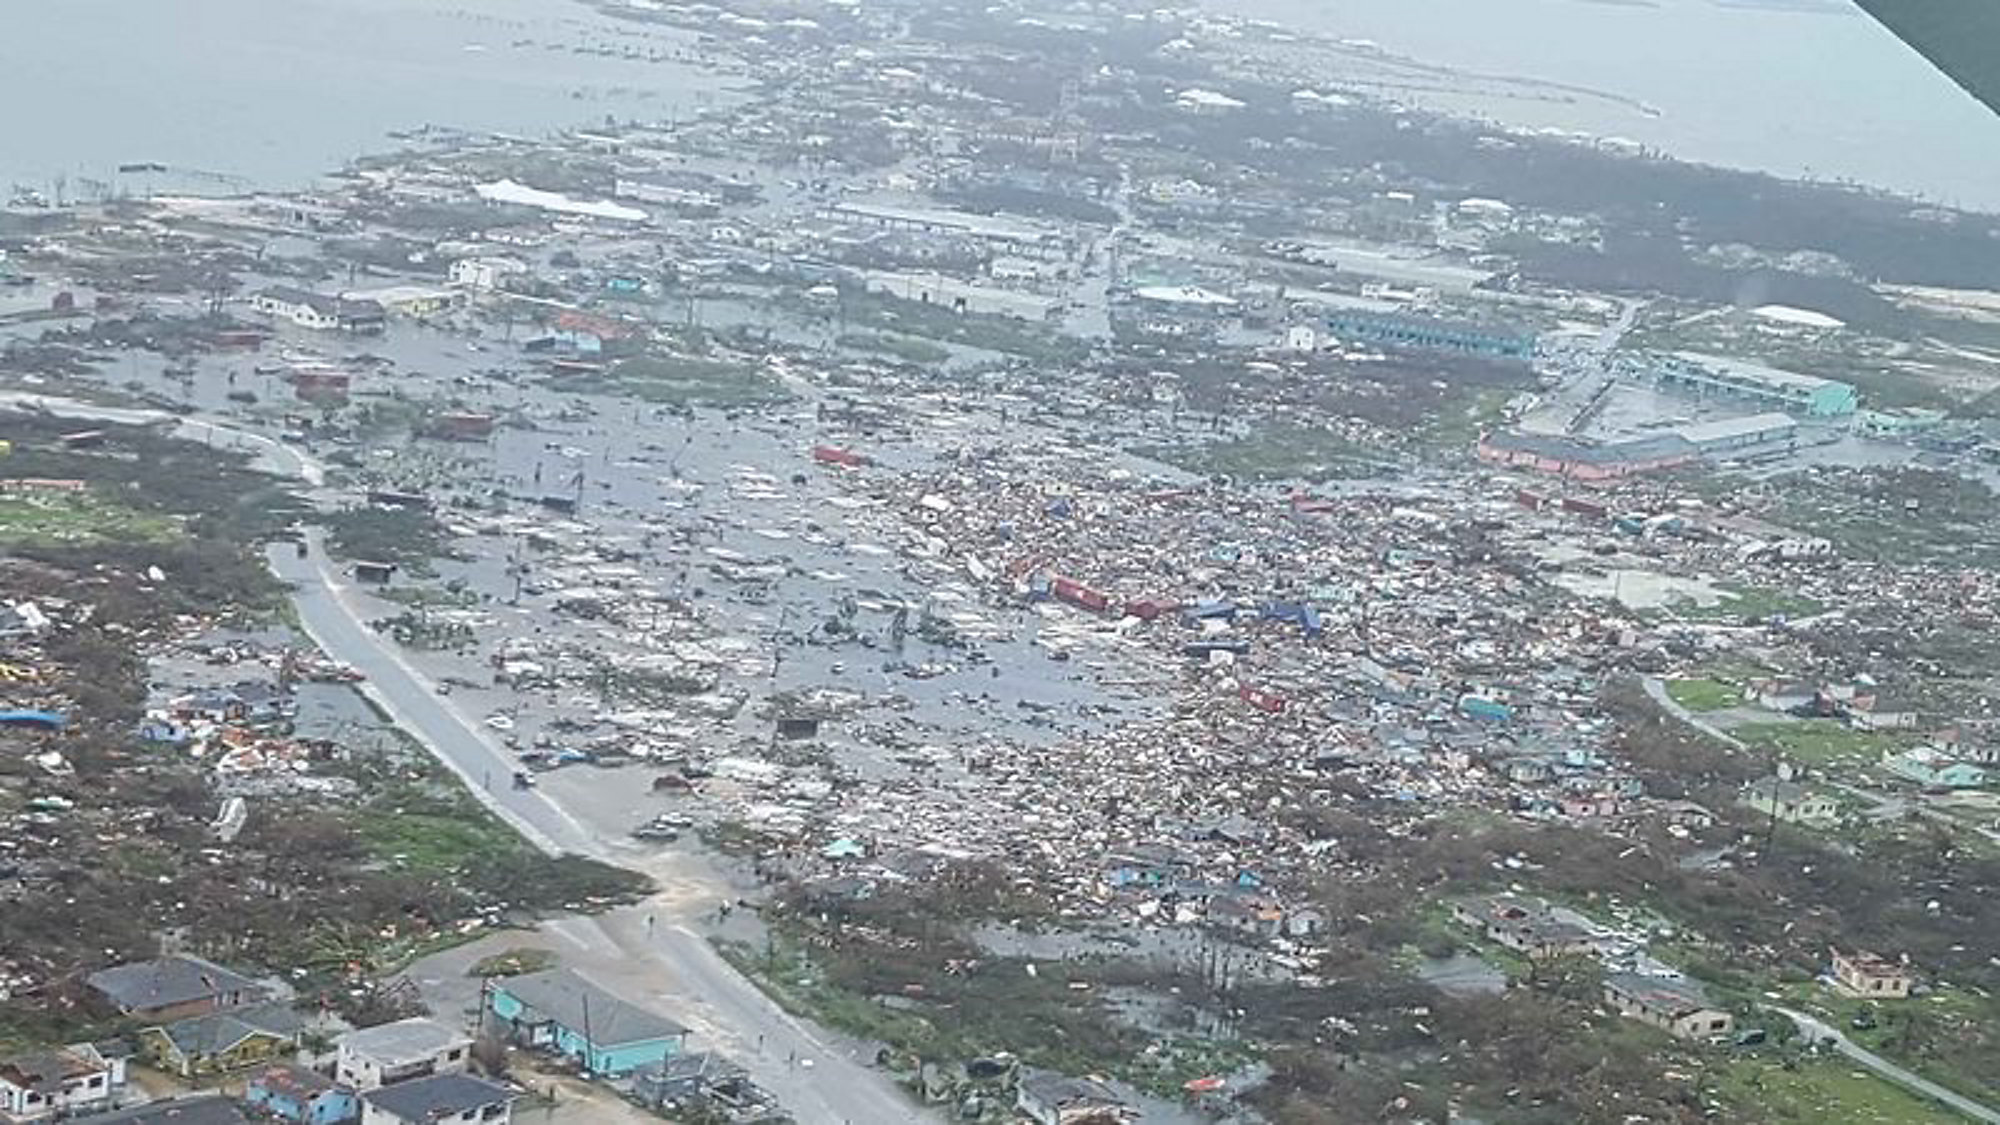 Send relief supplies to drop-off centers in South Florida - Click below to find aid organizations working on ways to transport the goods to Bahamas.